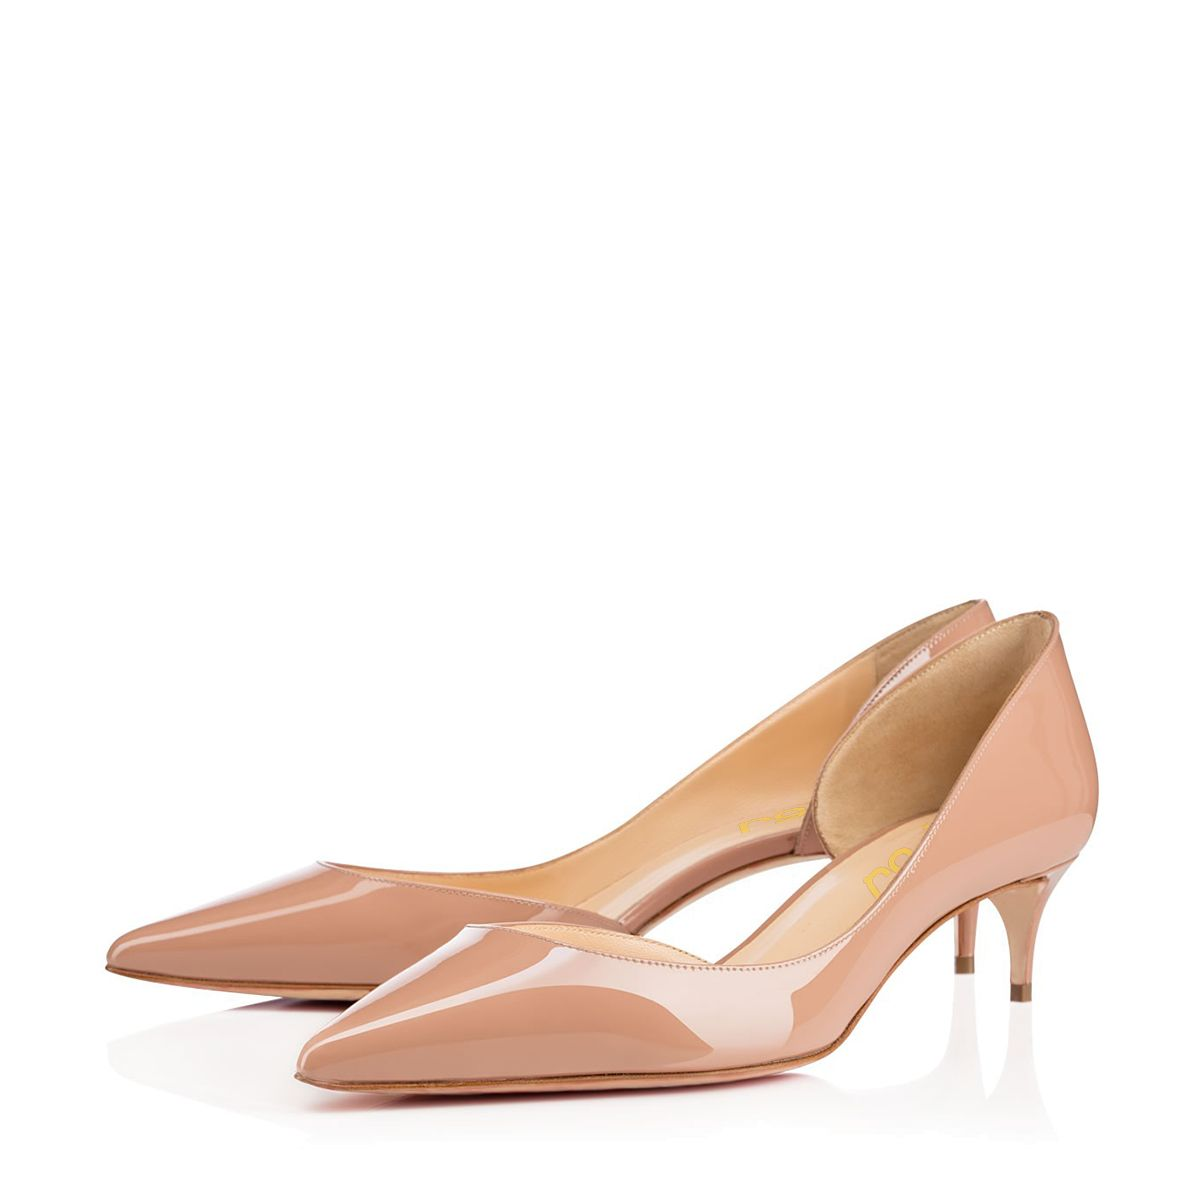 Pointed toe stiletto heel pumps in silver, nude, nude nubuck and rose gold